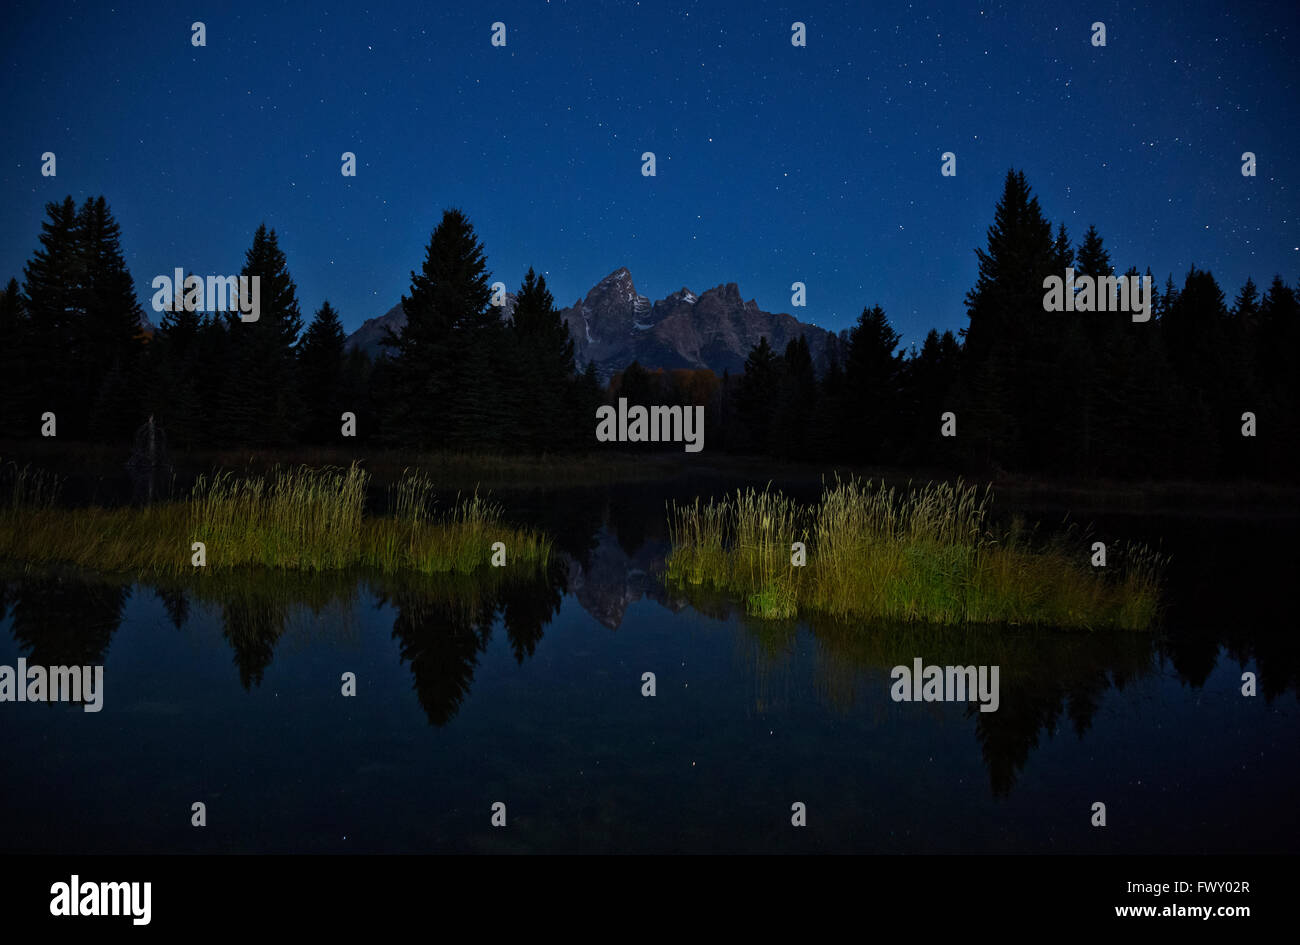 WYOMING - Stars lingering in the dawn sky at Schwabacher Landing on the Snake River in Grand Teton National Park. - Stock Image